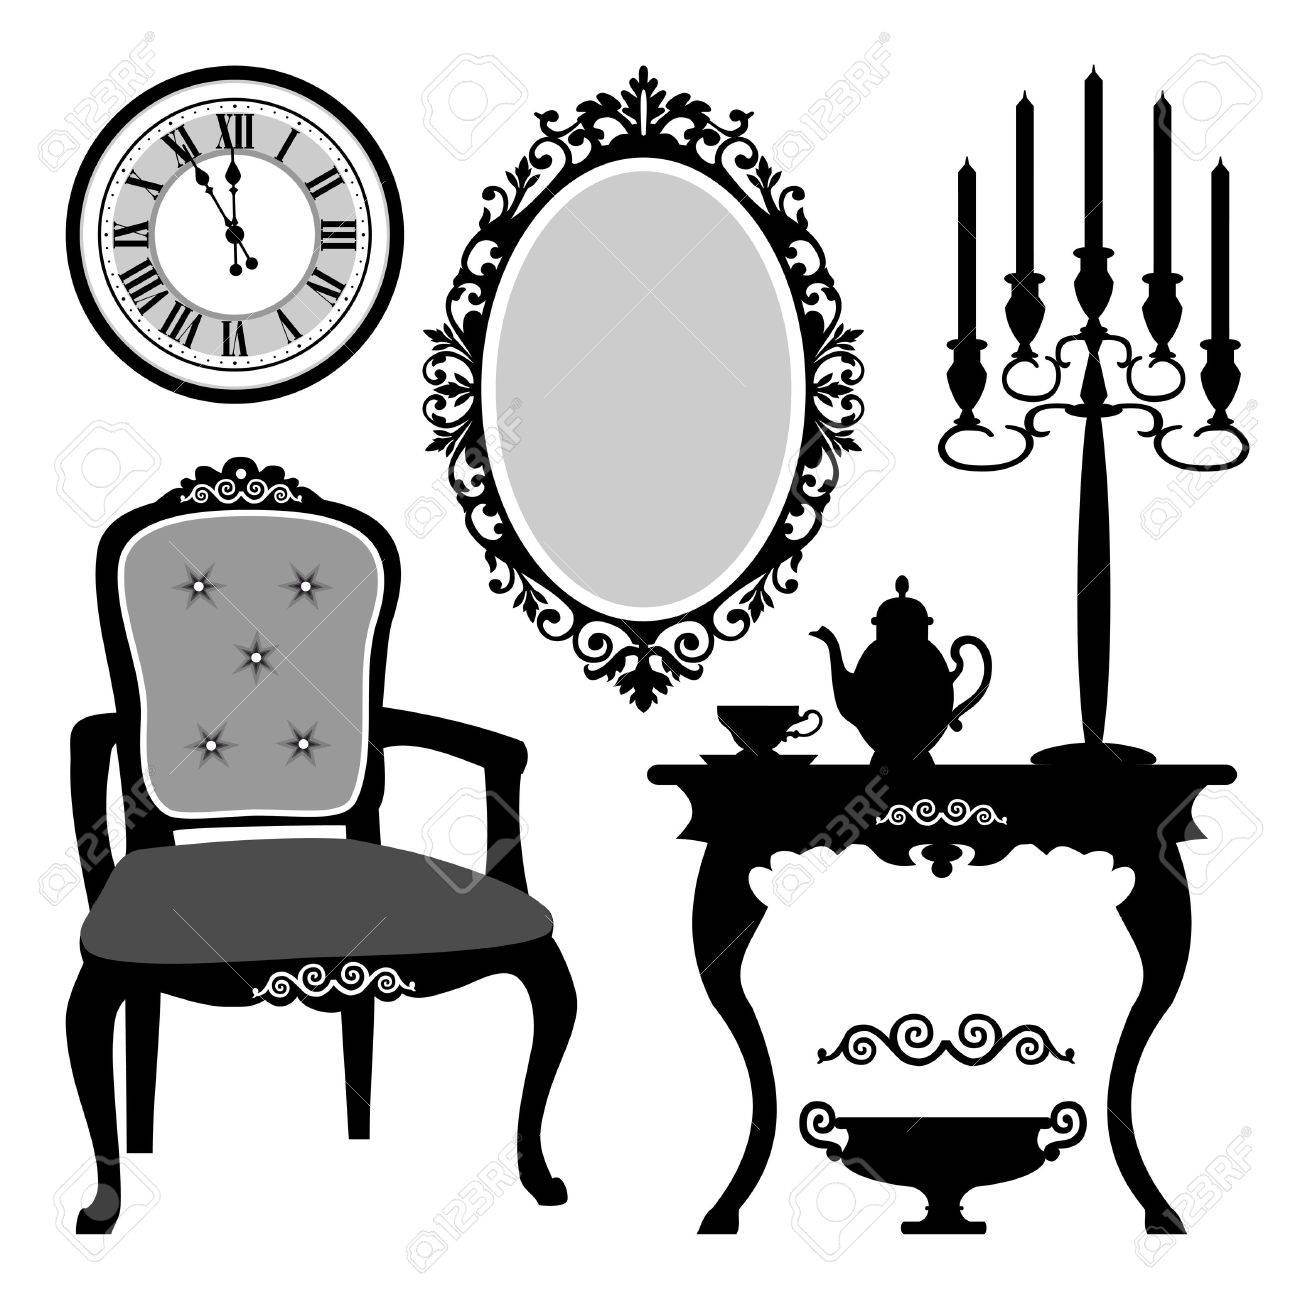 Antique chair silhouette - Antique Interior Objects Stock Vector 11868543